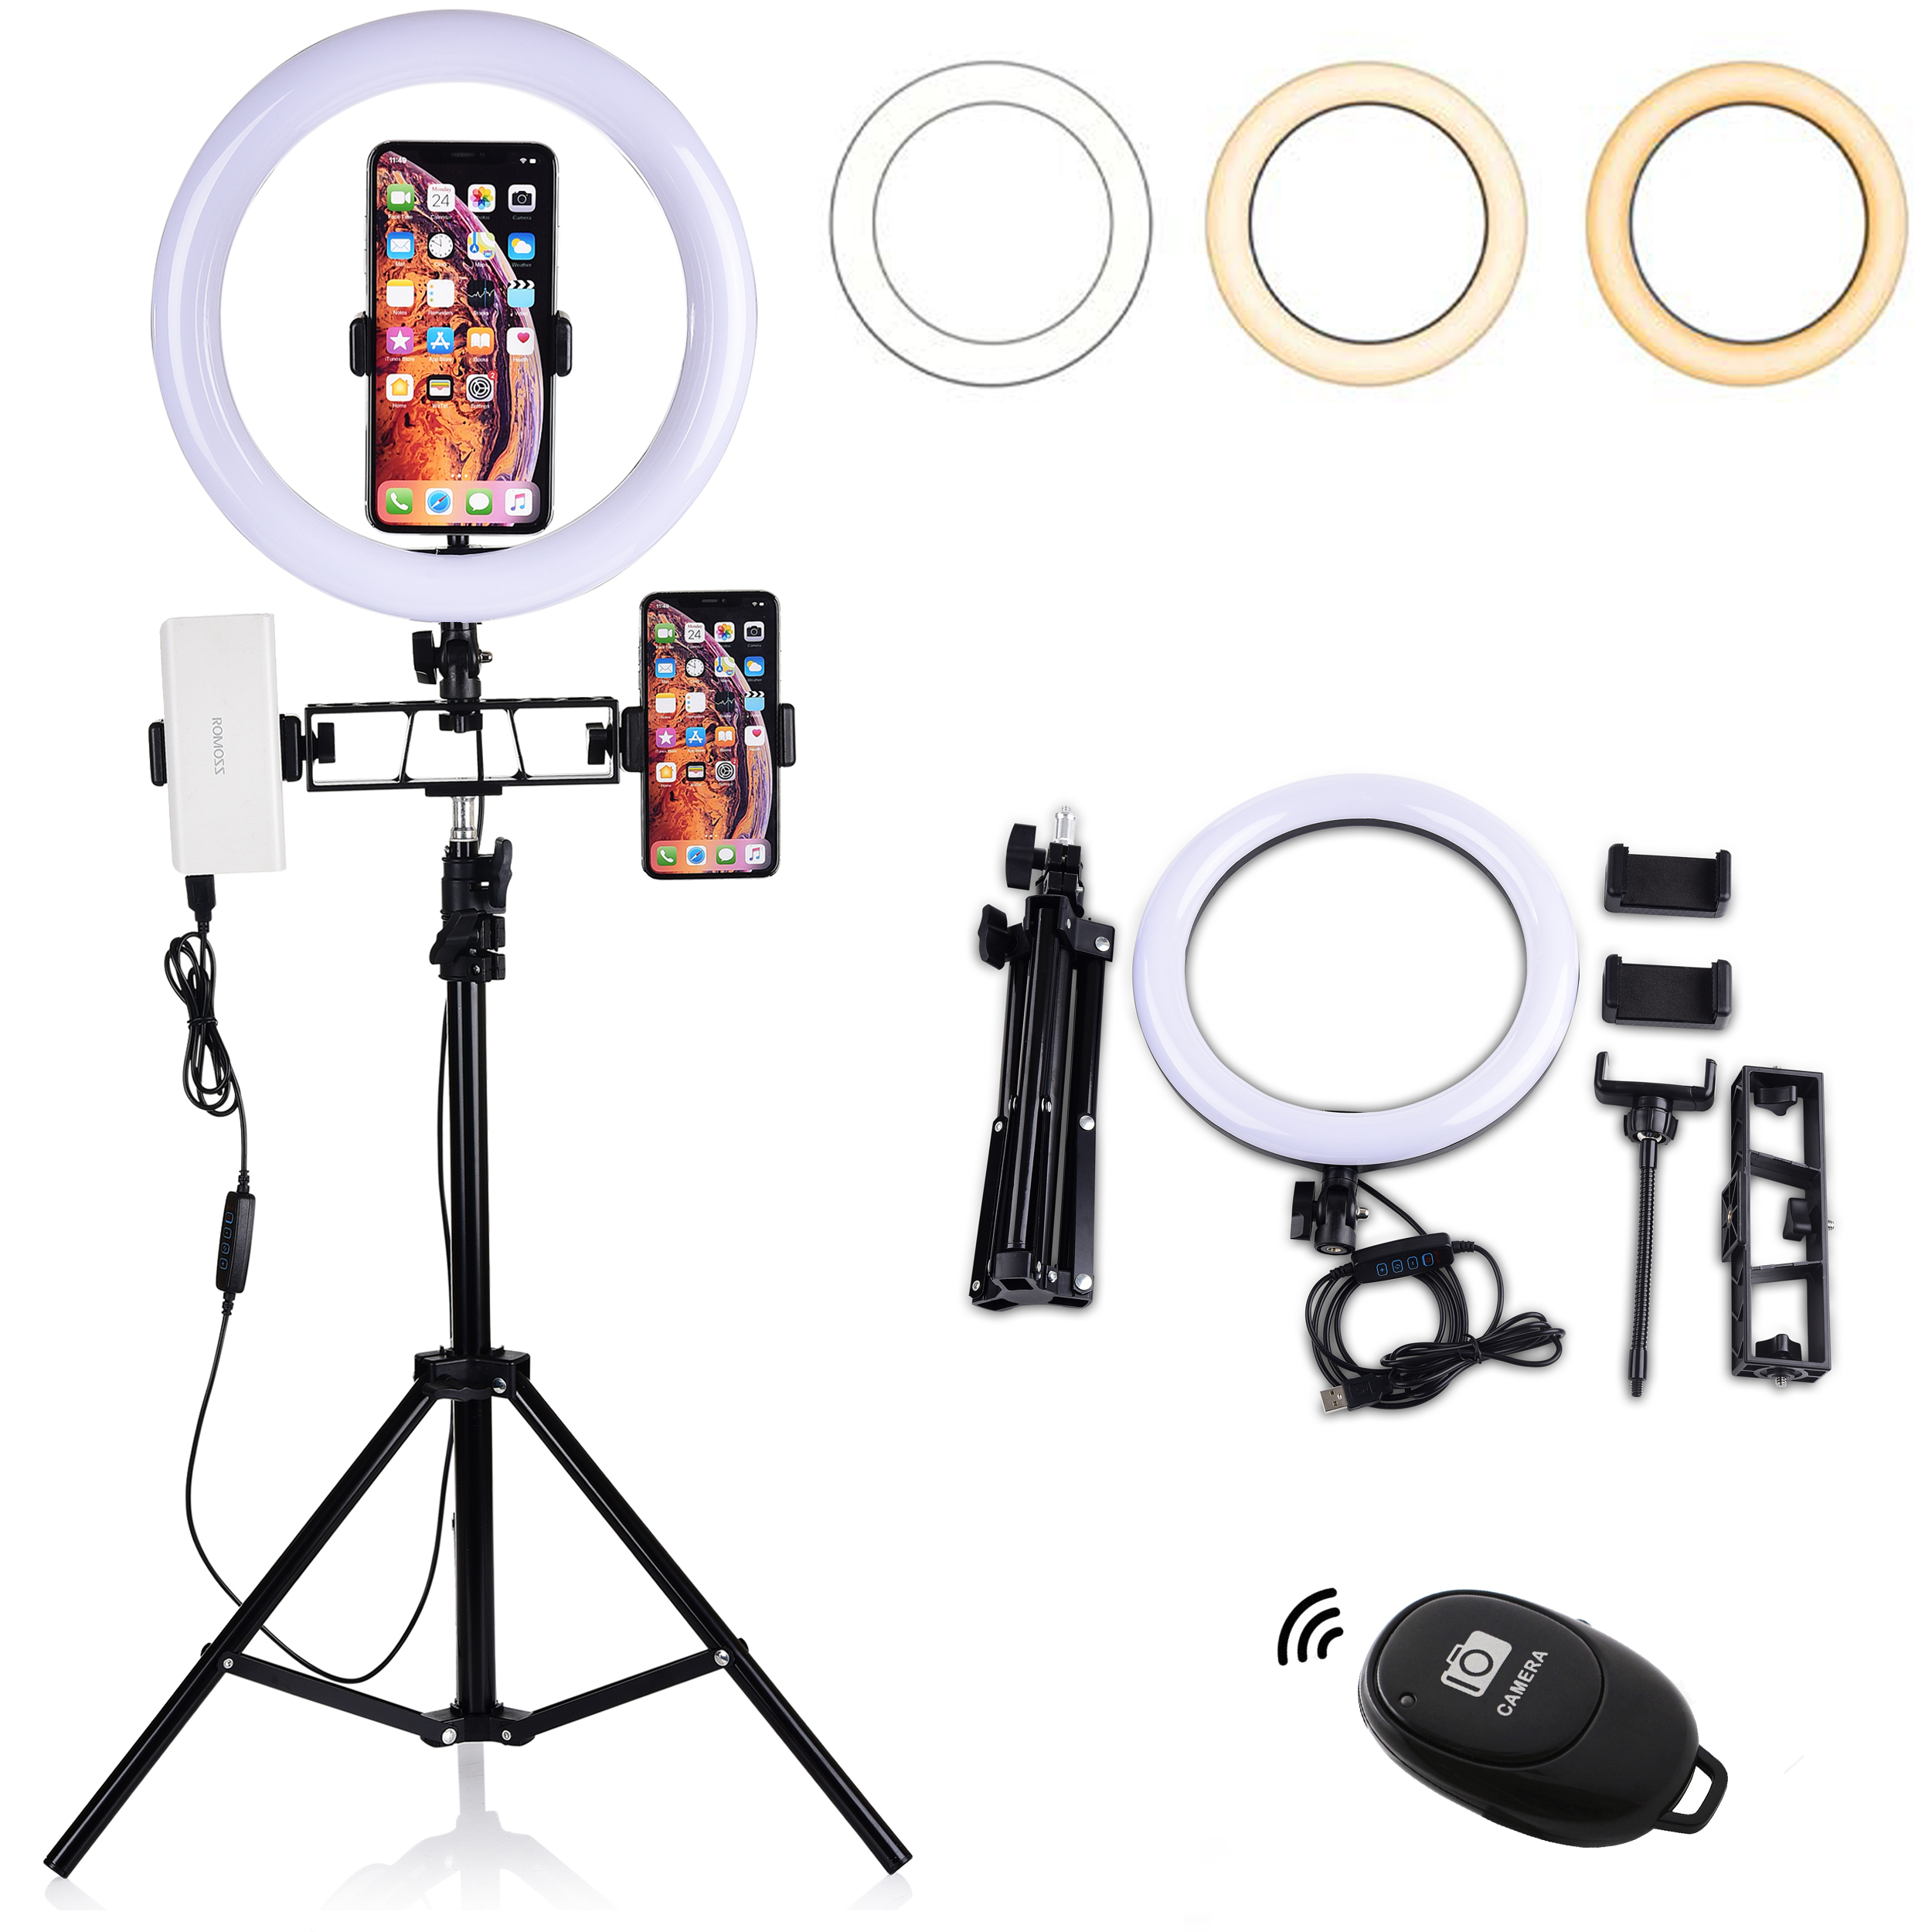 LED Ring Light with Tripod Stand for YouTube Video Beauty Table Top Makeup Lamp Desktop Mini LED Camera Light 3 Phone Holder image